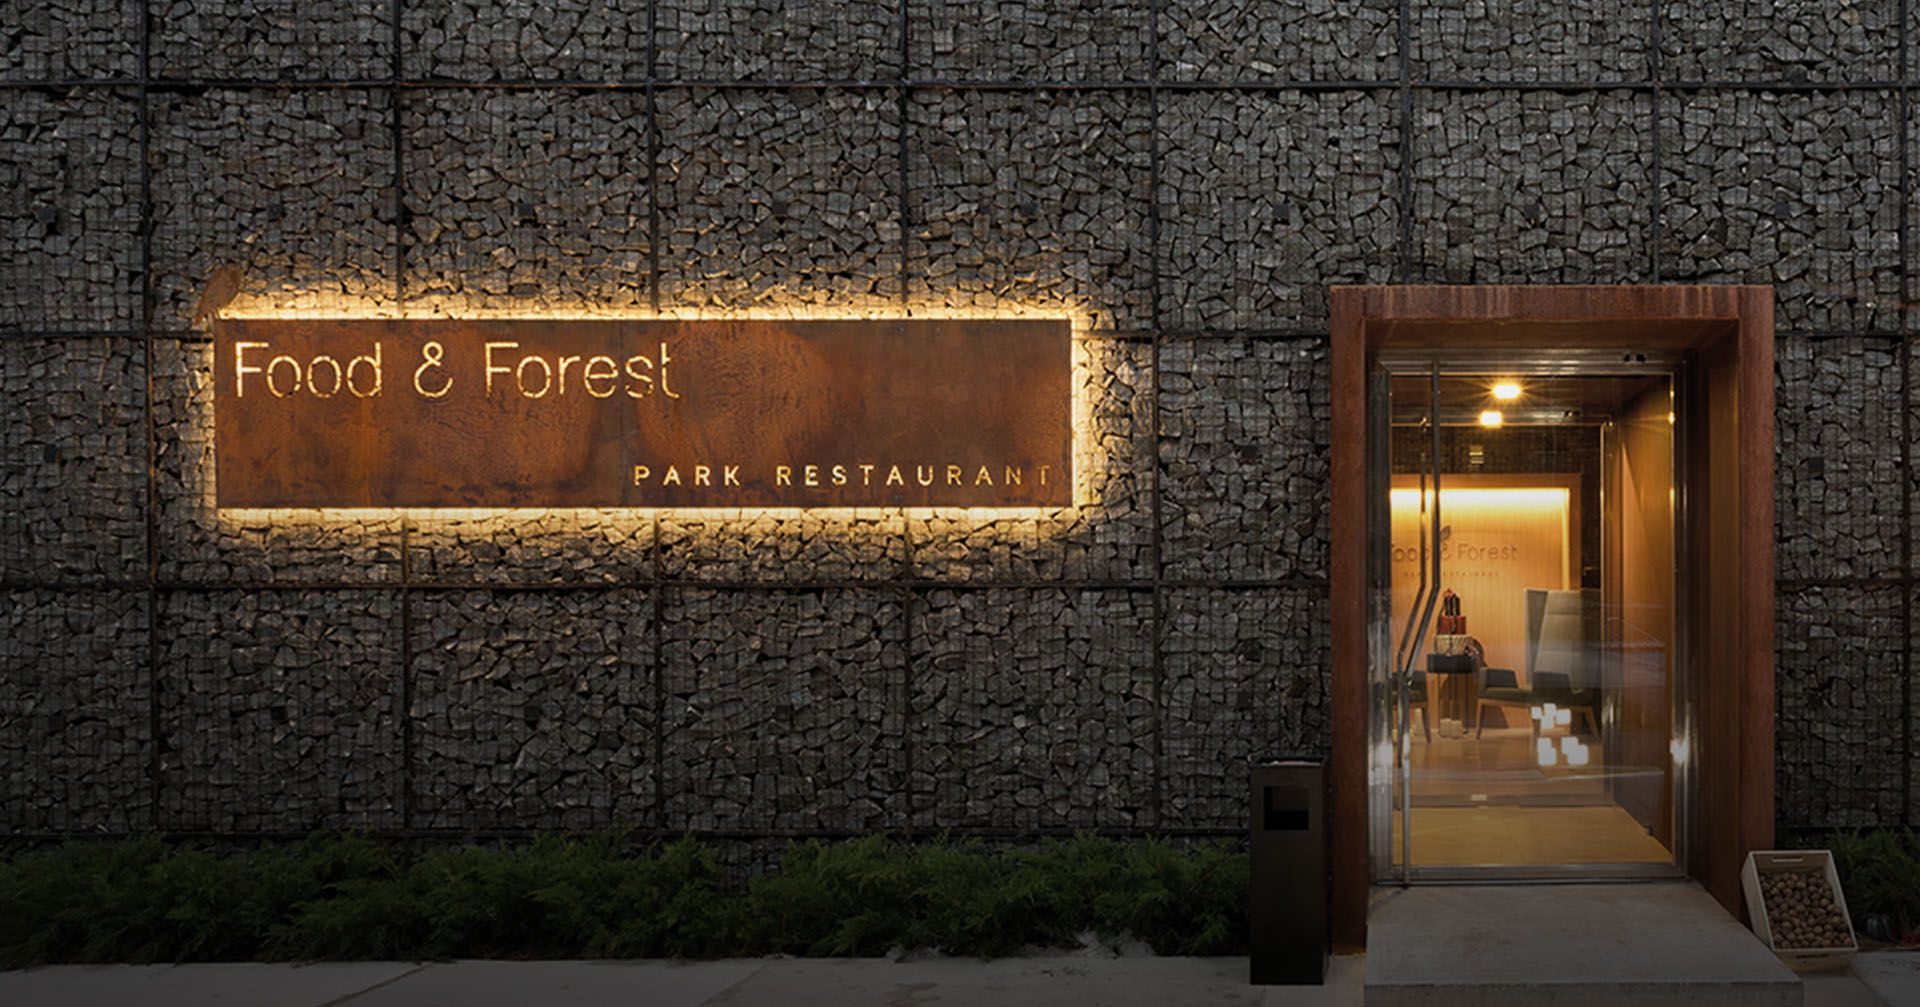 Food & Forest Logo Signage